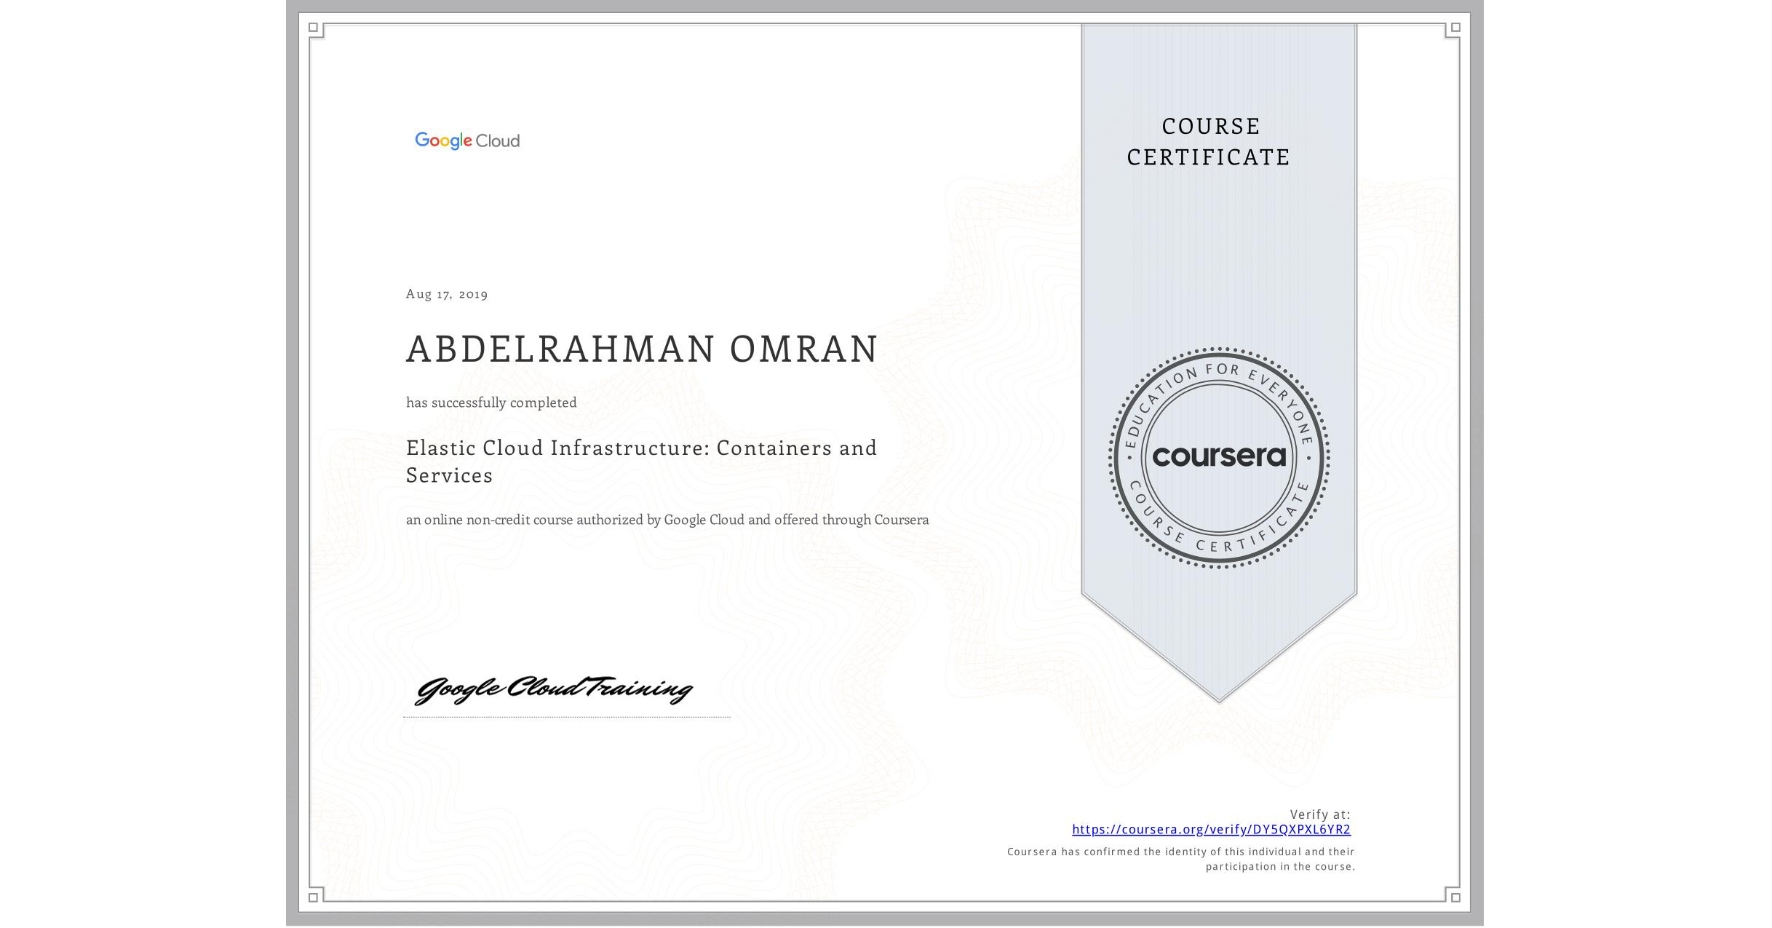 View certificate for ABDELRAHMAN OMRAN, Elastic Cloud Infrastructure: Containers and Services, an online non-credit course authorized by Google Cloud and offered through Coursera